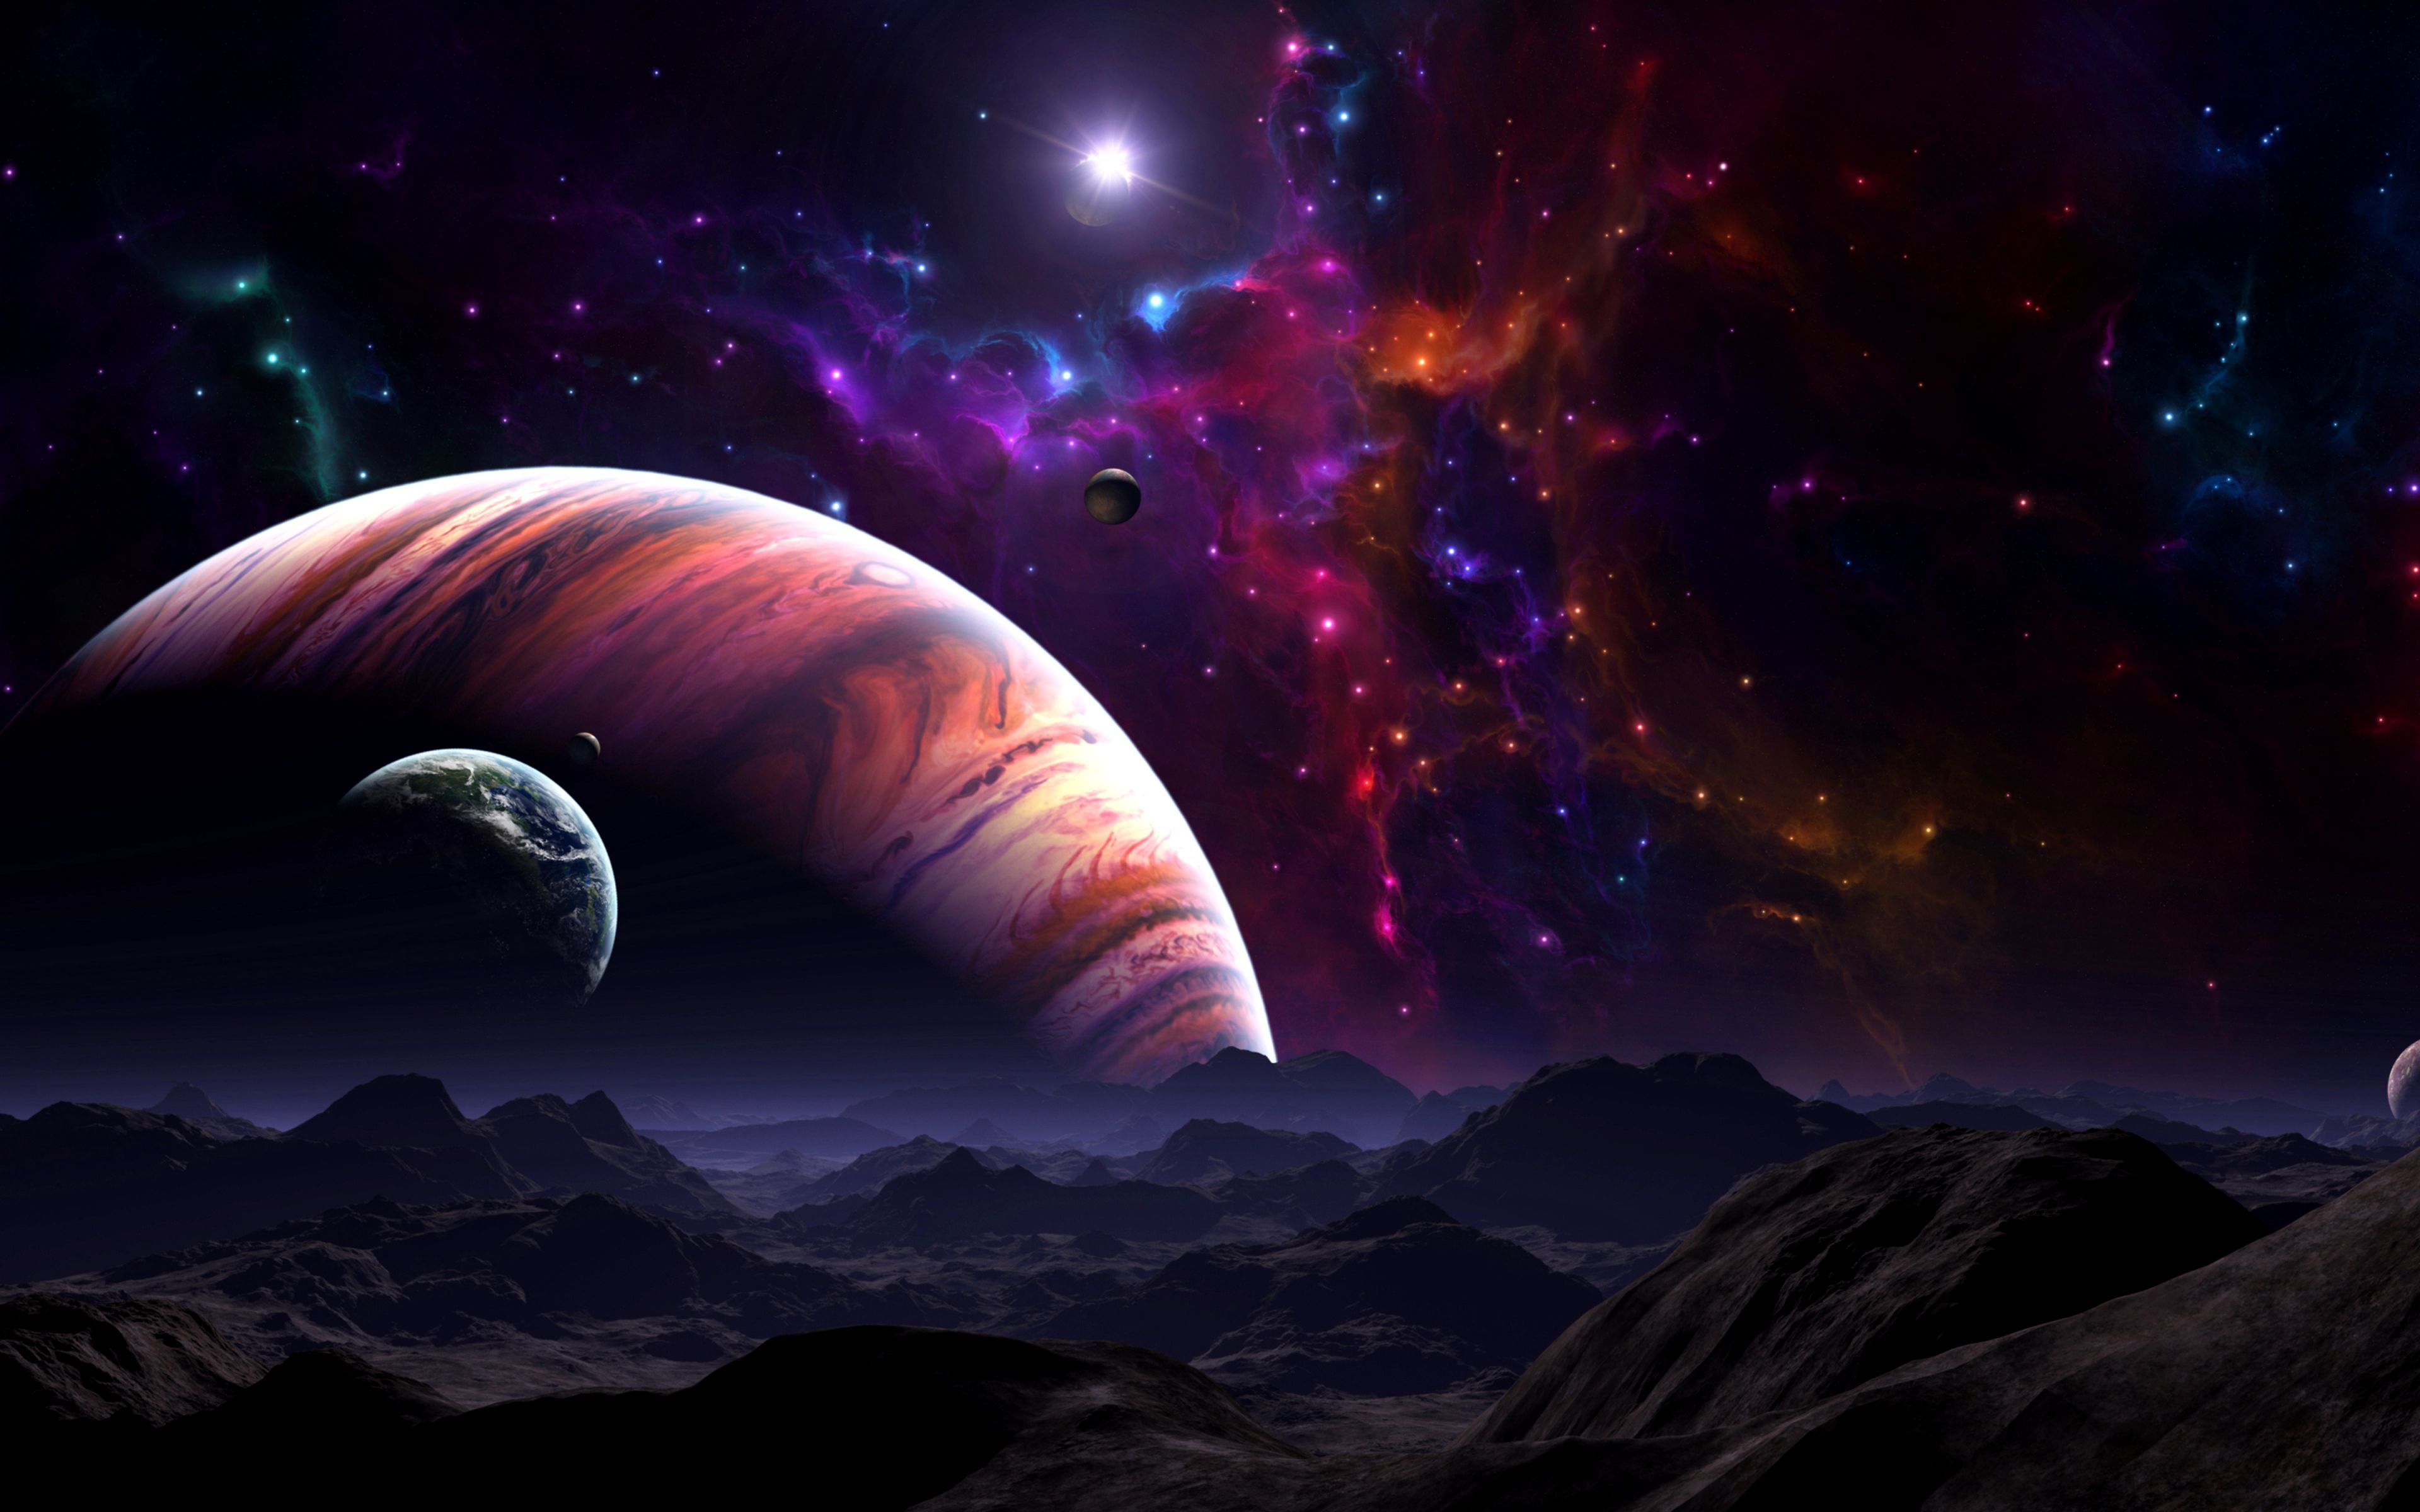 Space Landscape Wallpaper 4k Gallery Fondecranhiver Space Landscape Wallpaper 4k Gallery Planets Wallpaper Landscape Wallpaper Outer Space Wallpaper